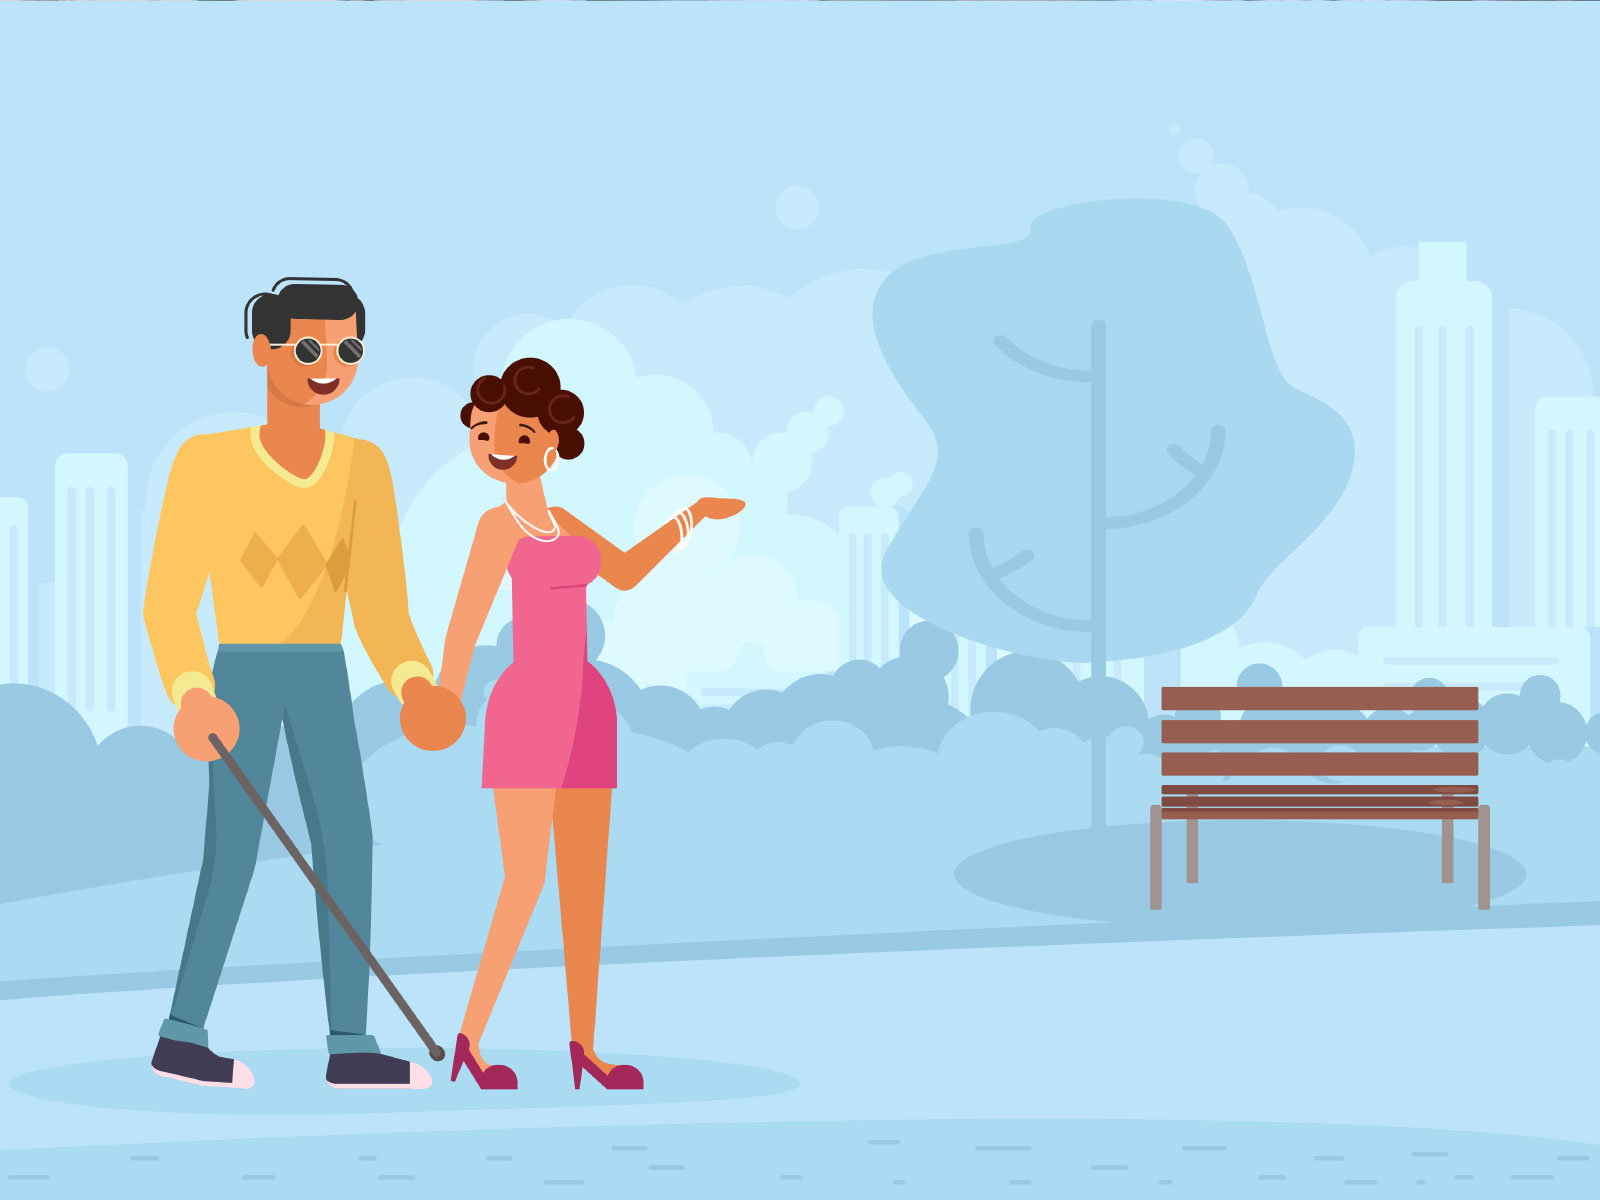 Cartoon of man and woman walking in a park, man has a walking stick